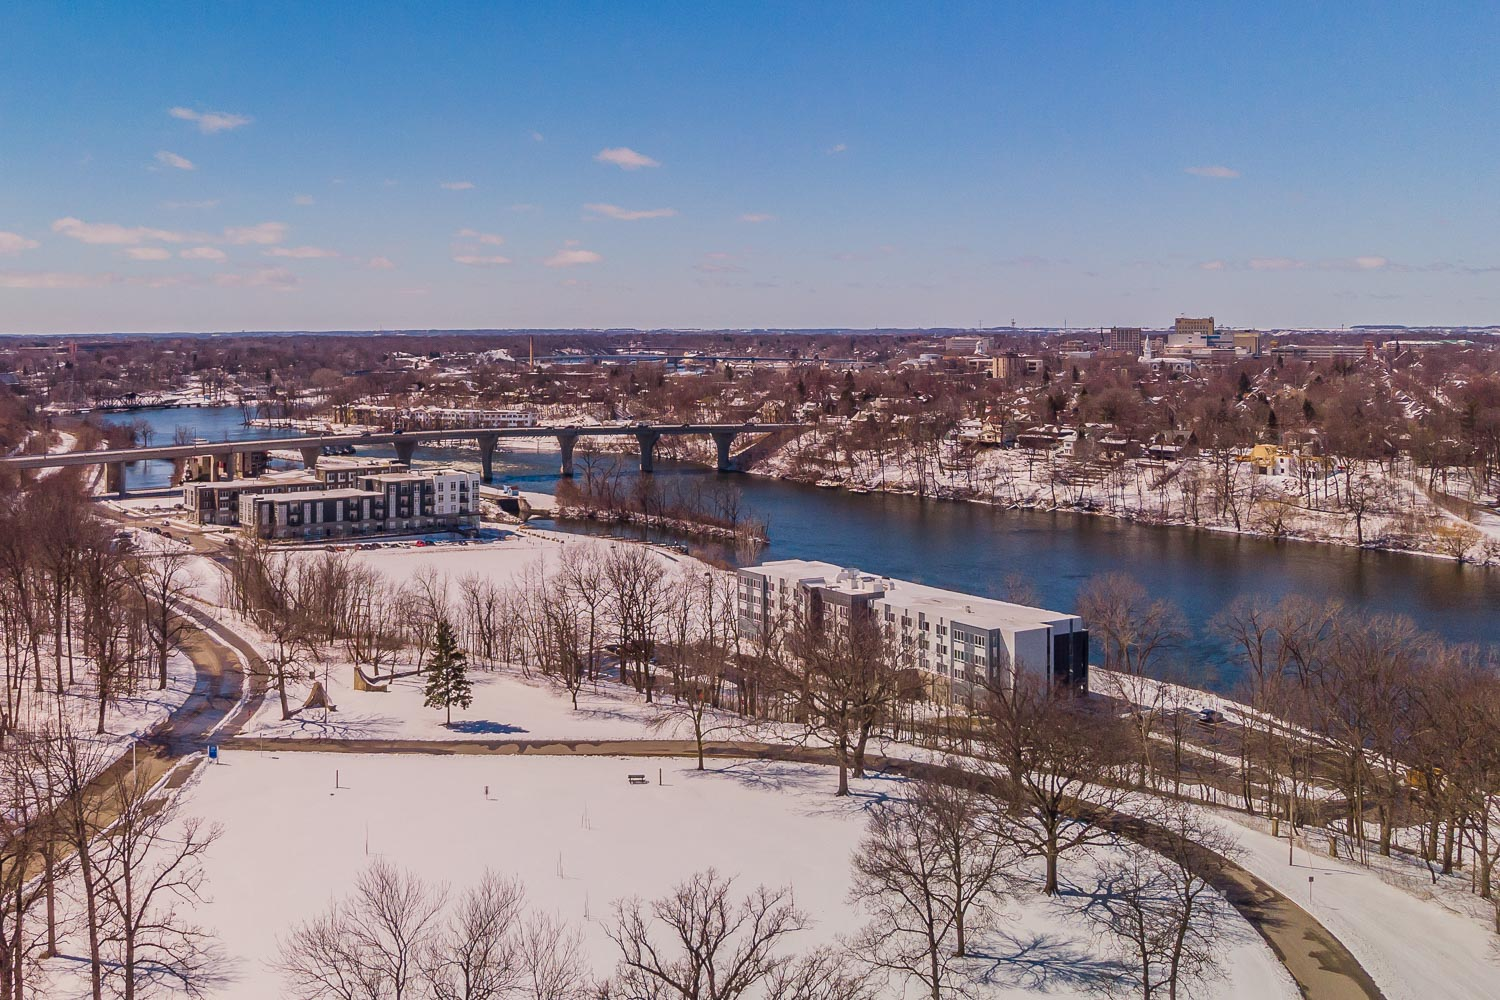 Commercial_Photography_Wisconsin-20180404-03.jpg